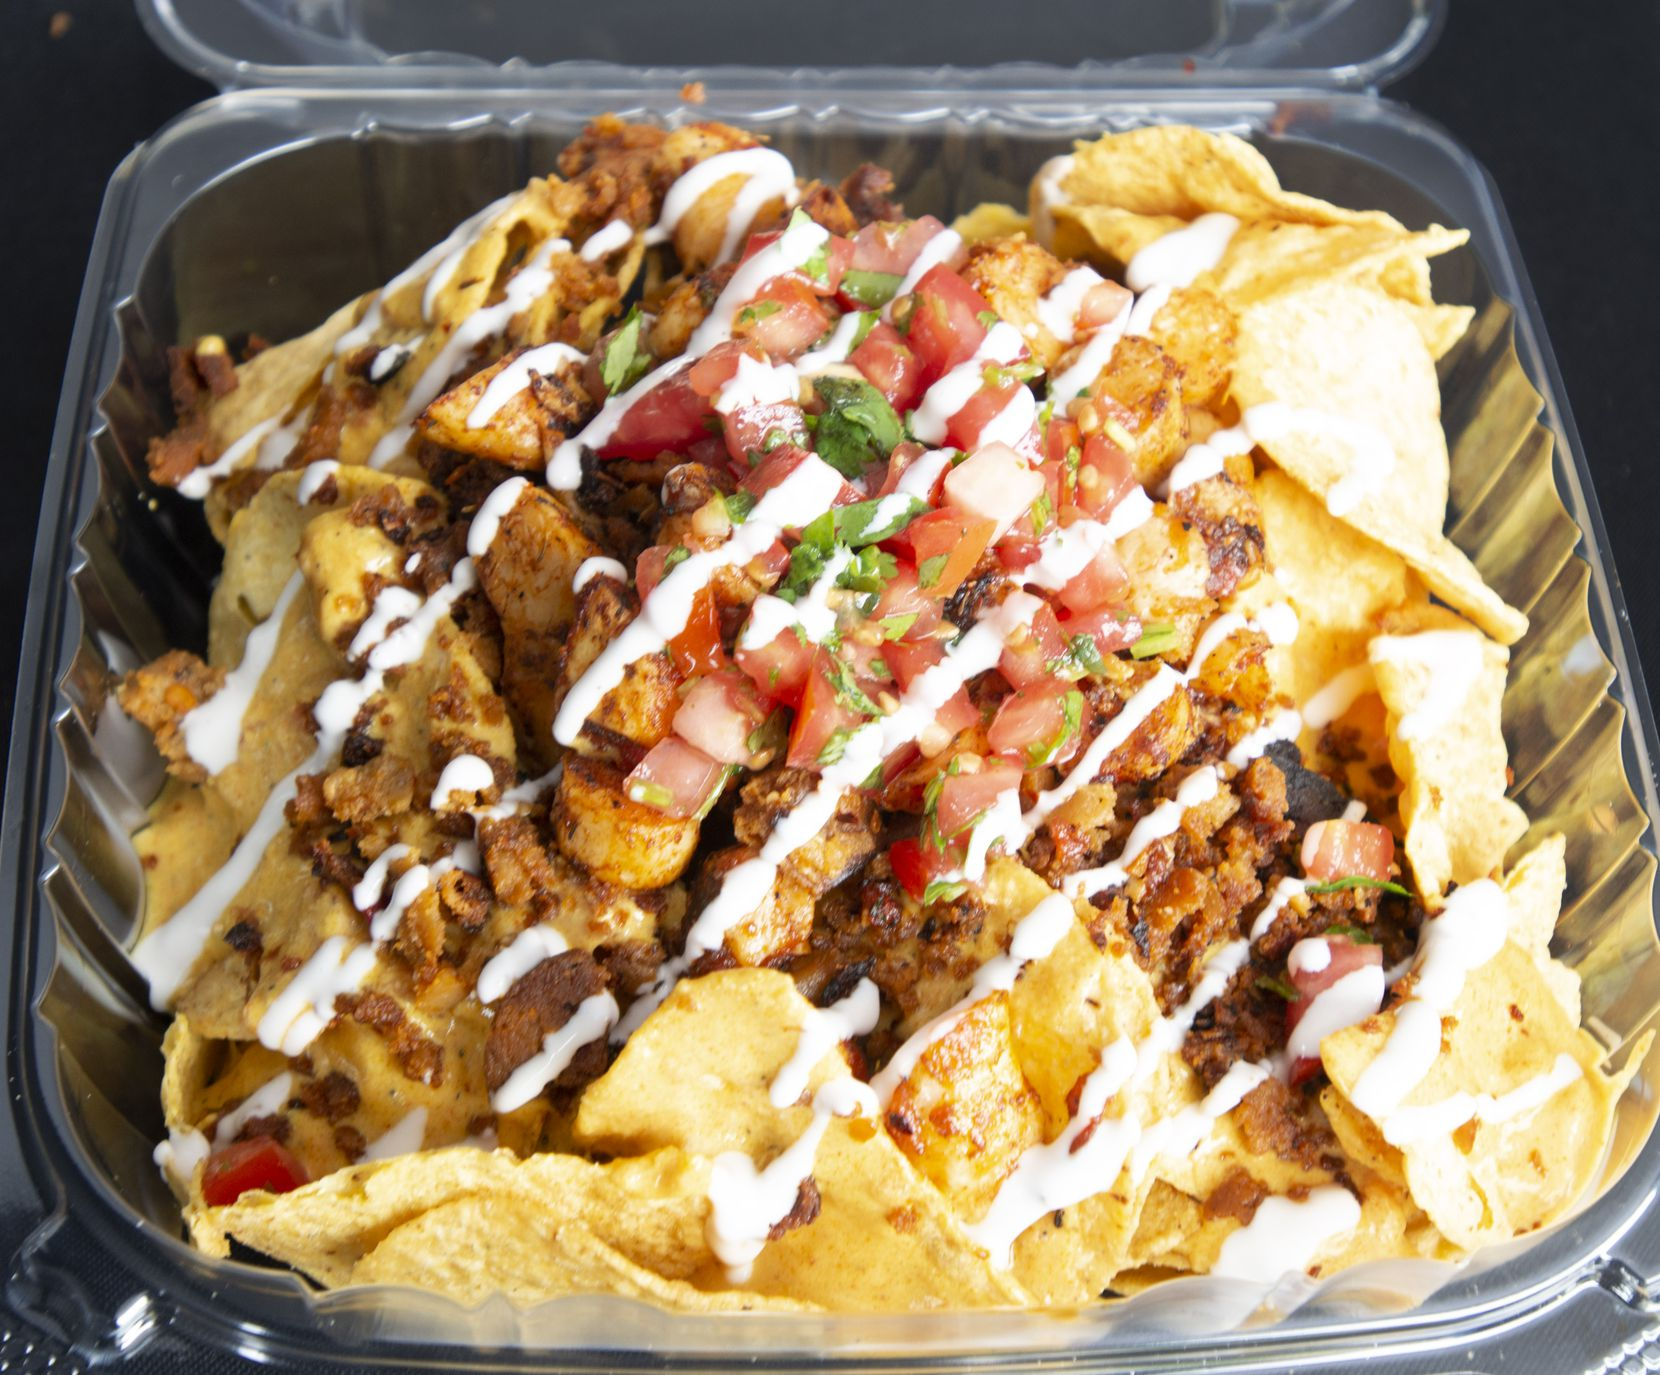 """Shrimp"" nachos at Brandon Waller's food stand in the Dallas Farmers Market on June 2, 2019. (Robert W. Hart/Special Contributor)"